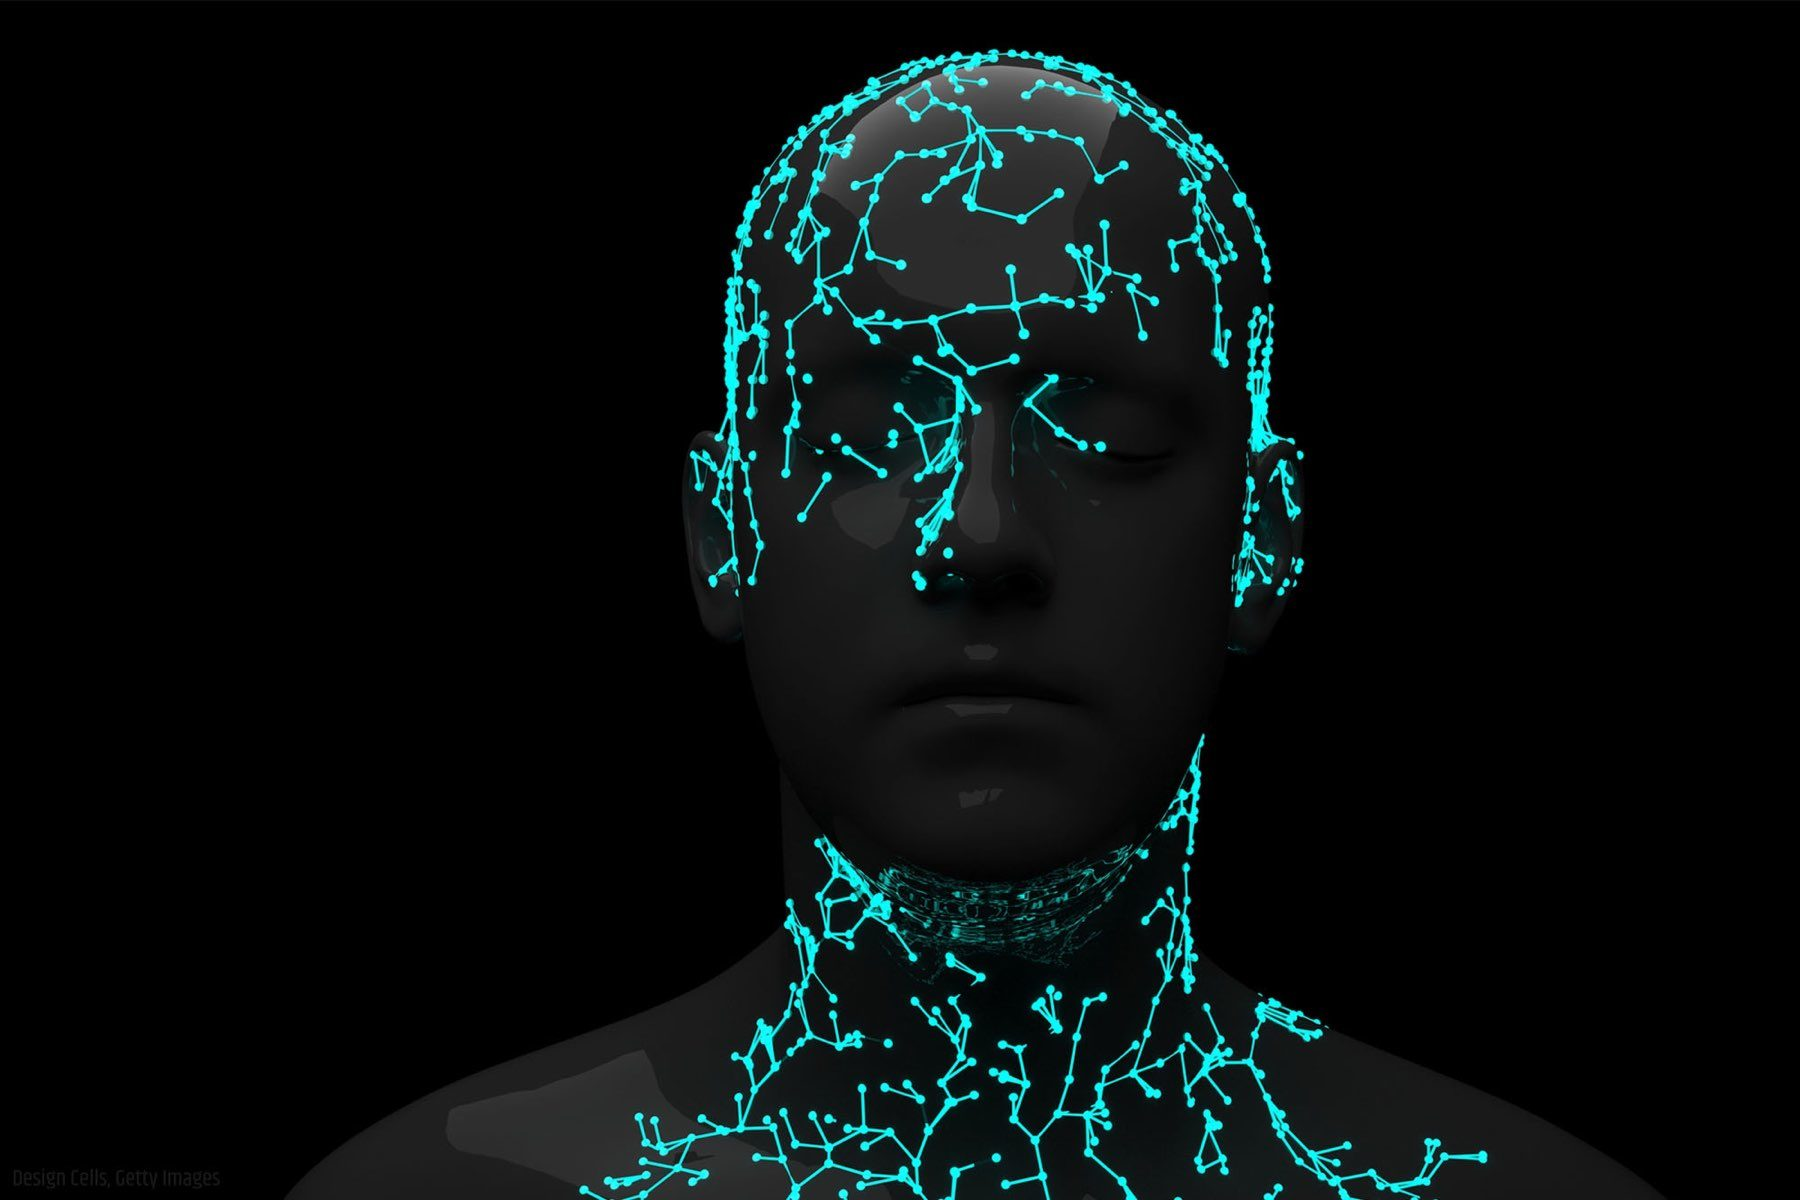 Neon neural net forming silhouette of head